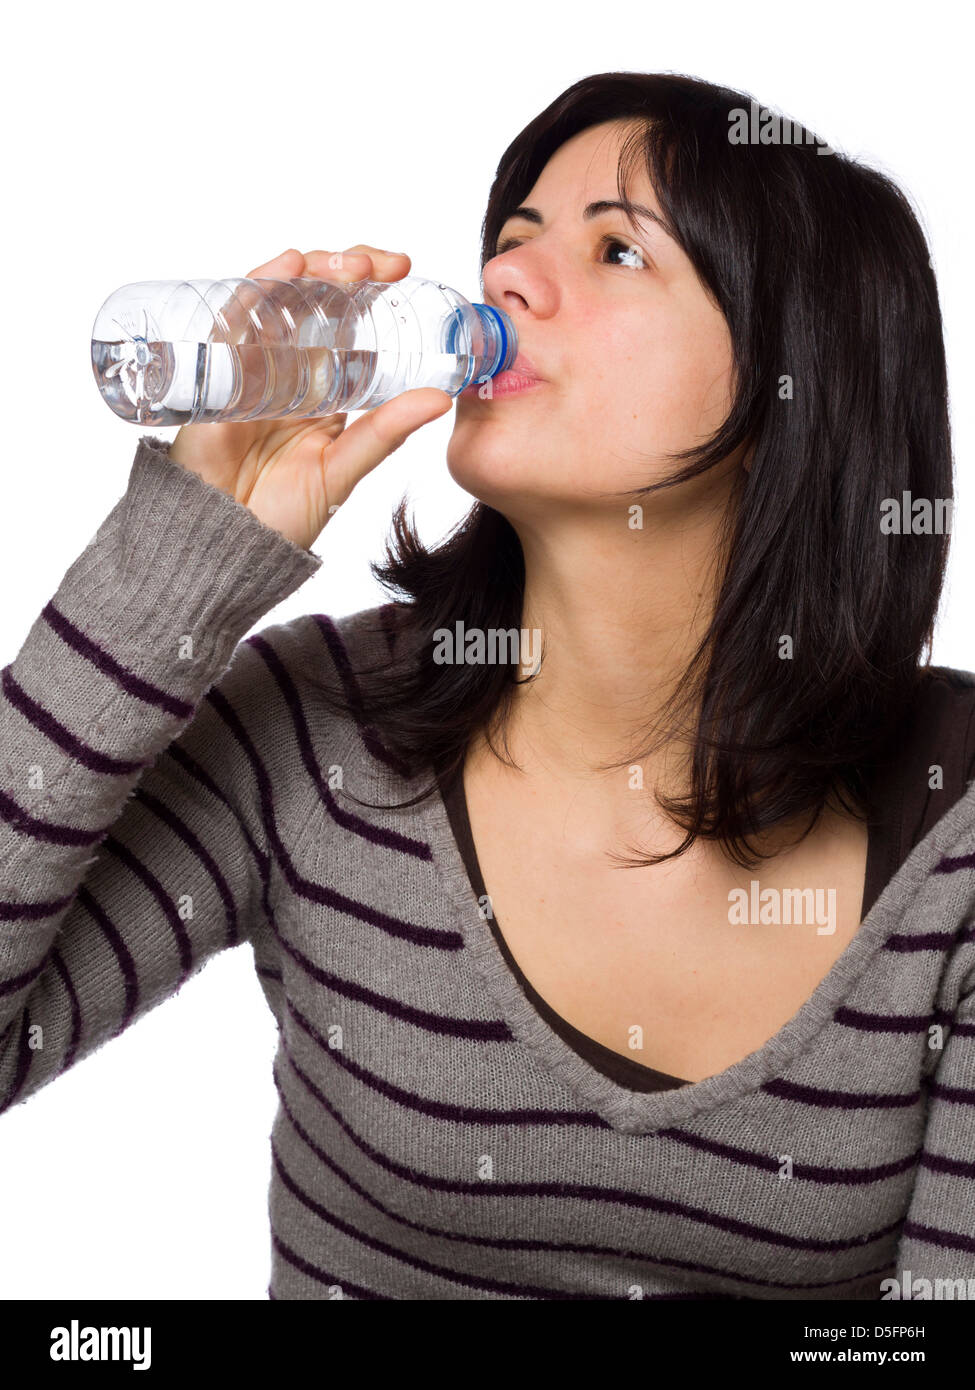 Young woman drinking water from plastic bottle on white background - Stock Image